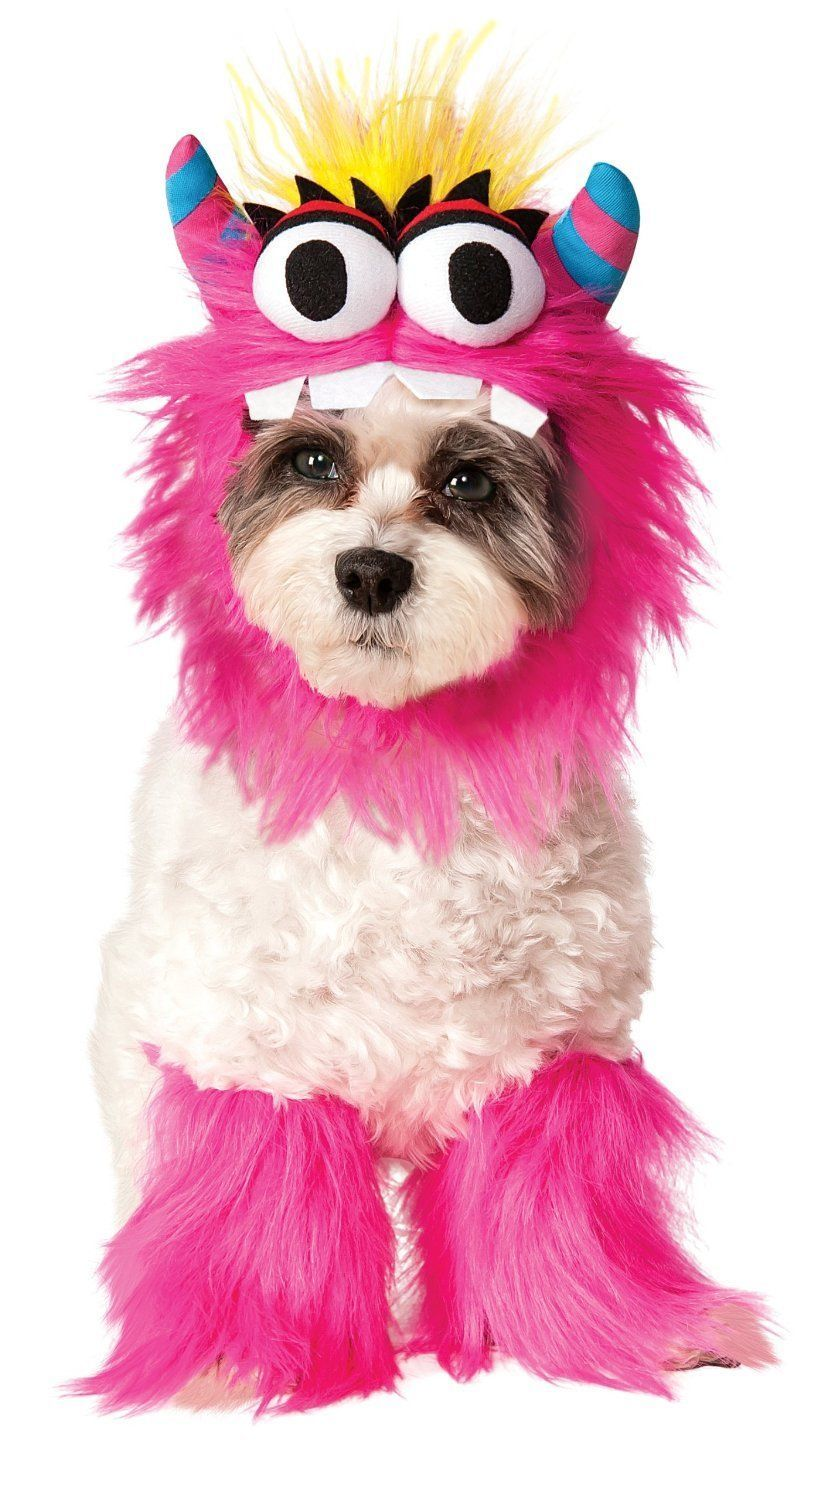 Image 4 of Adorable Pet Dog Costume: Blue Monster 580179 or Pink Monster 580180, Rubies - B